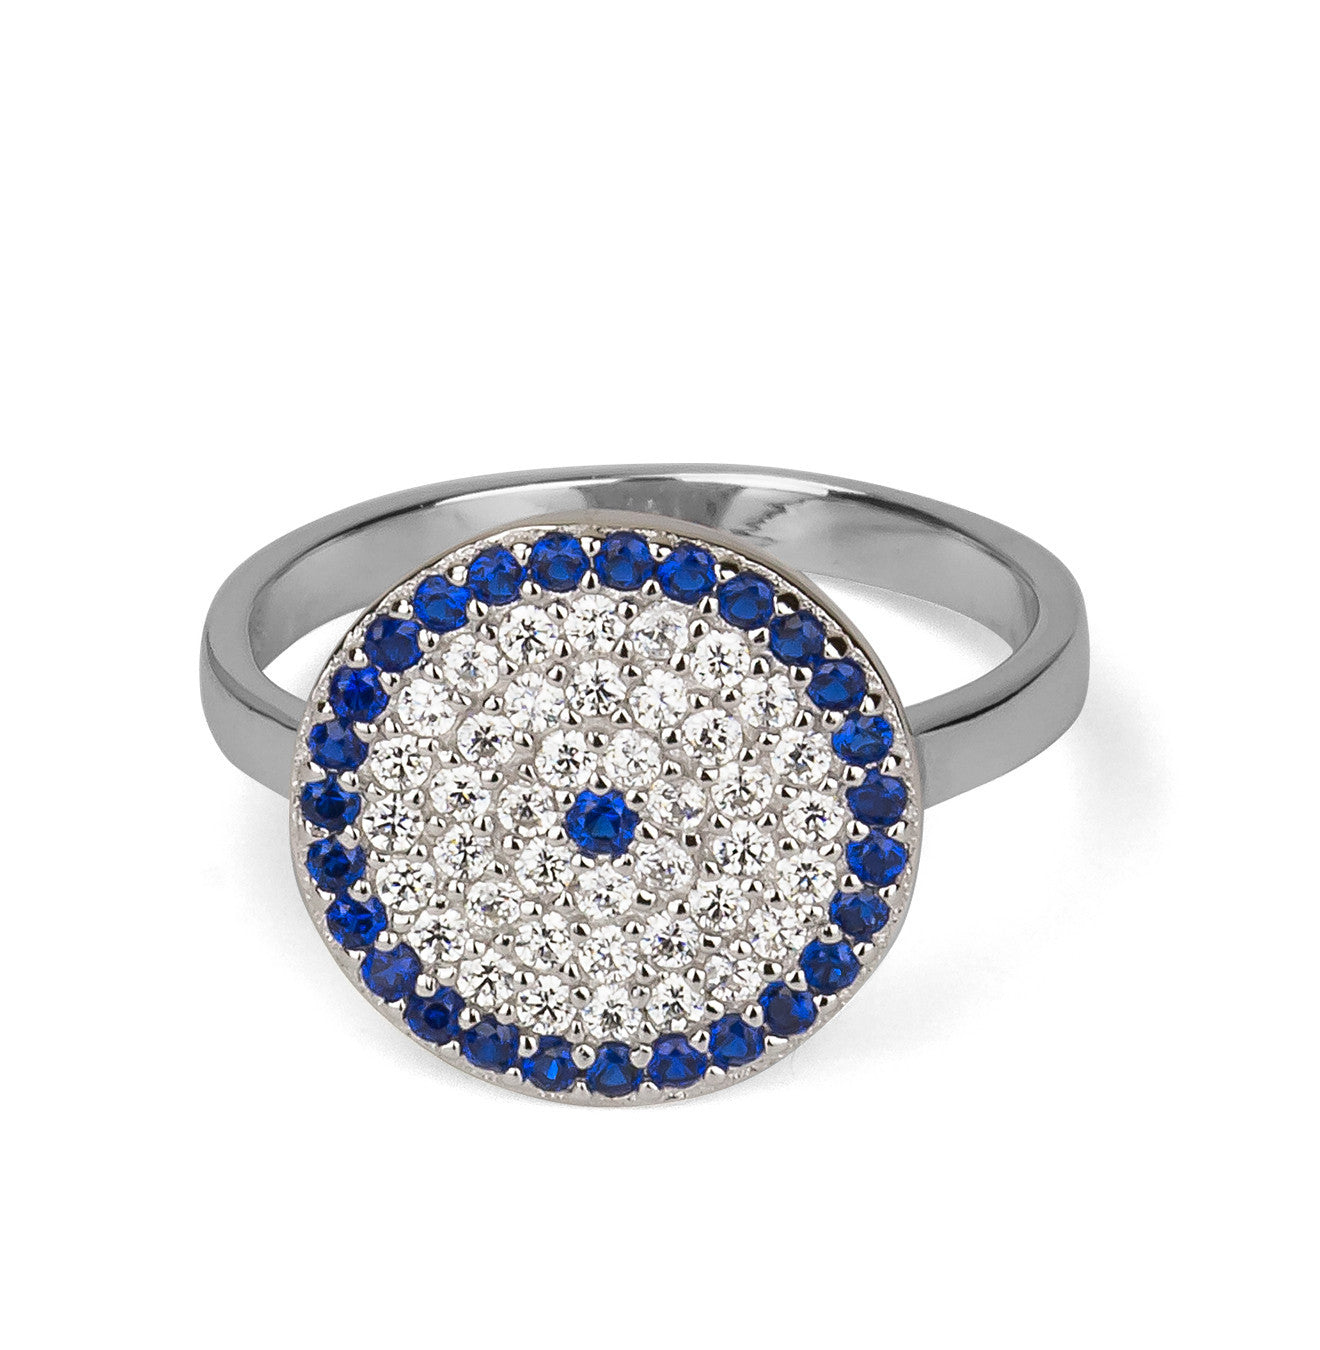 carat antiques deco ring evil art diamond eye evileyerings from sapphire alert trend and gemtalkblog rings lang hunt gem